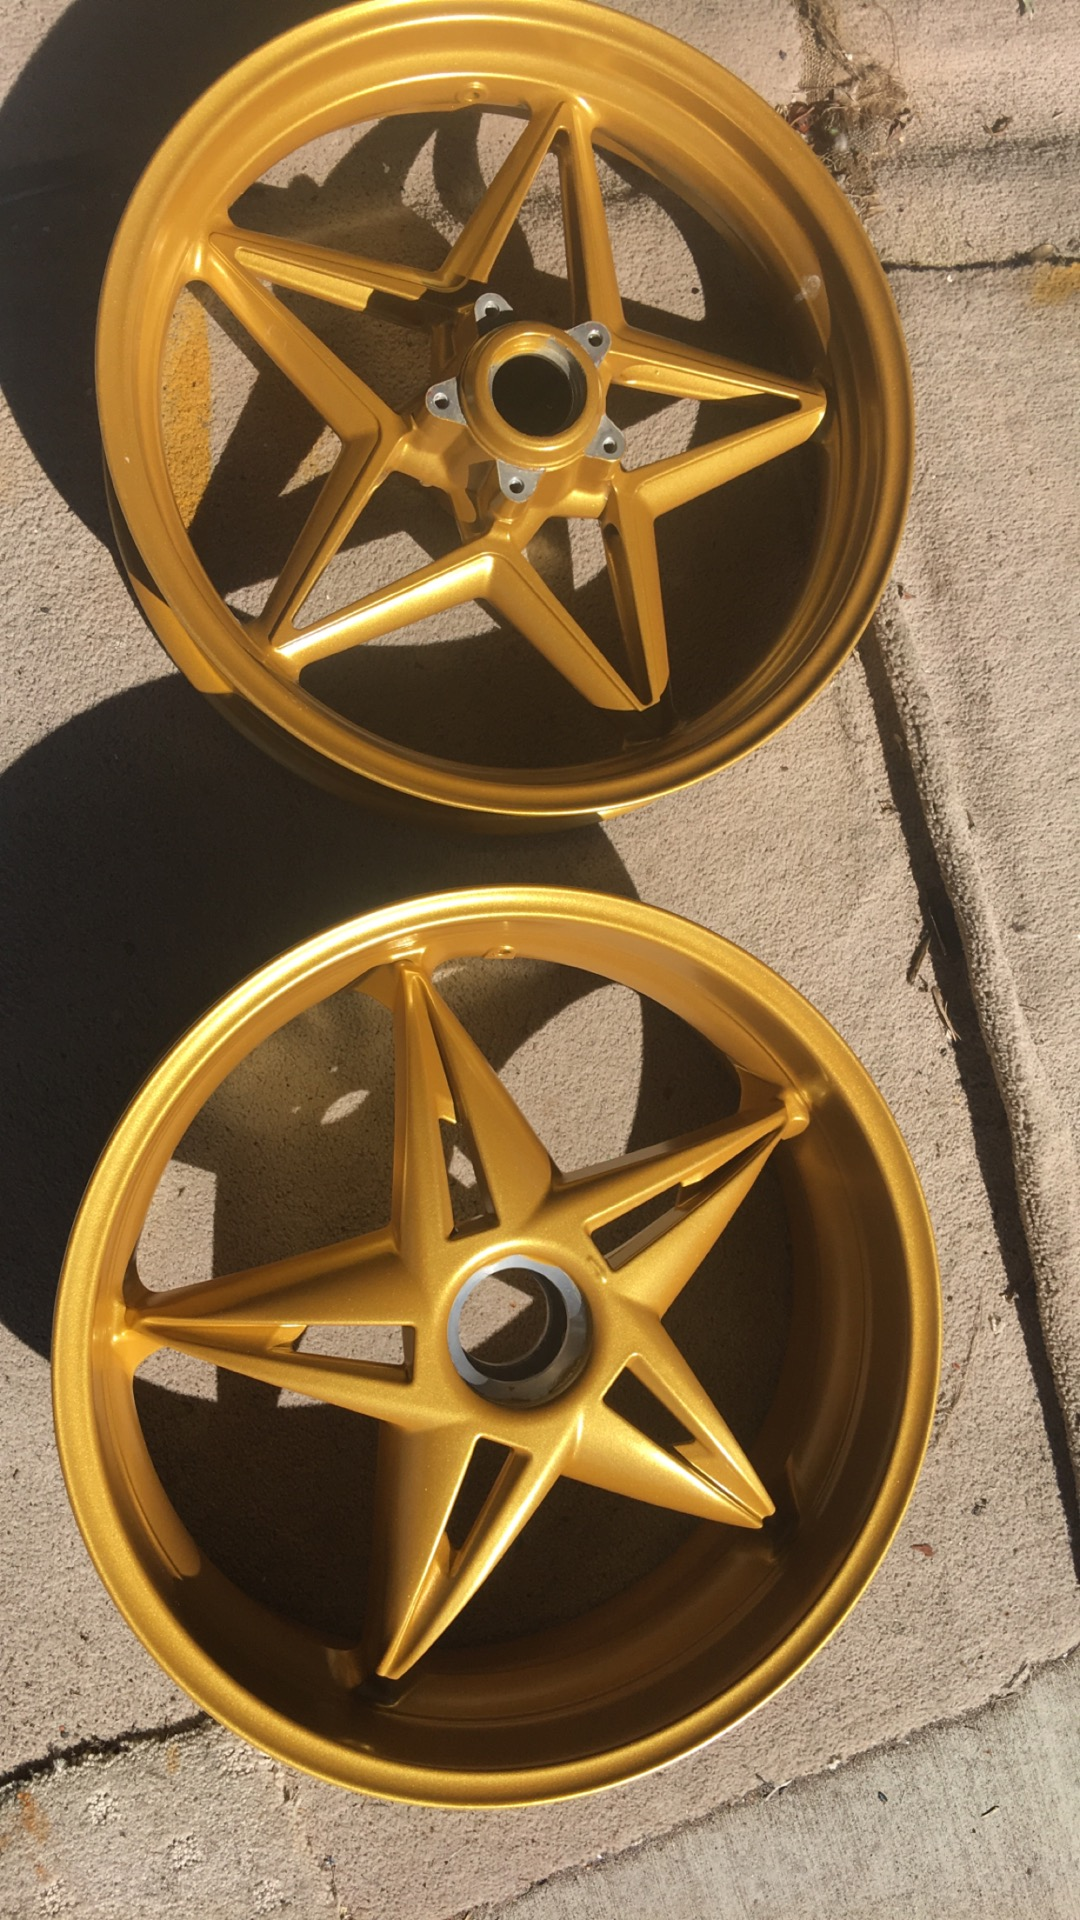 Bike Rims - Gold